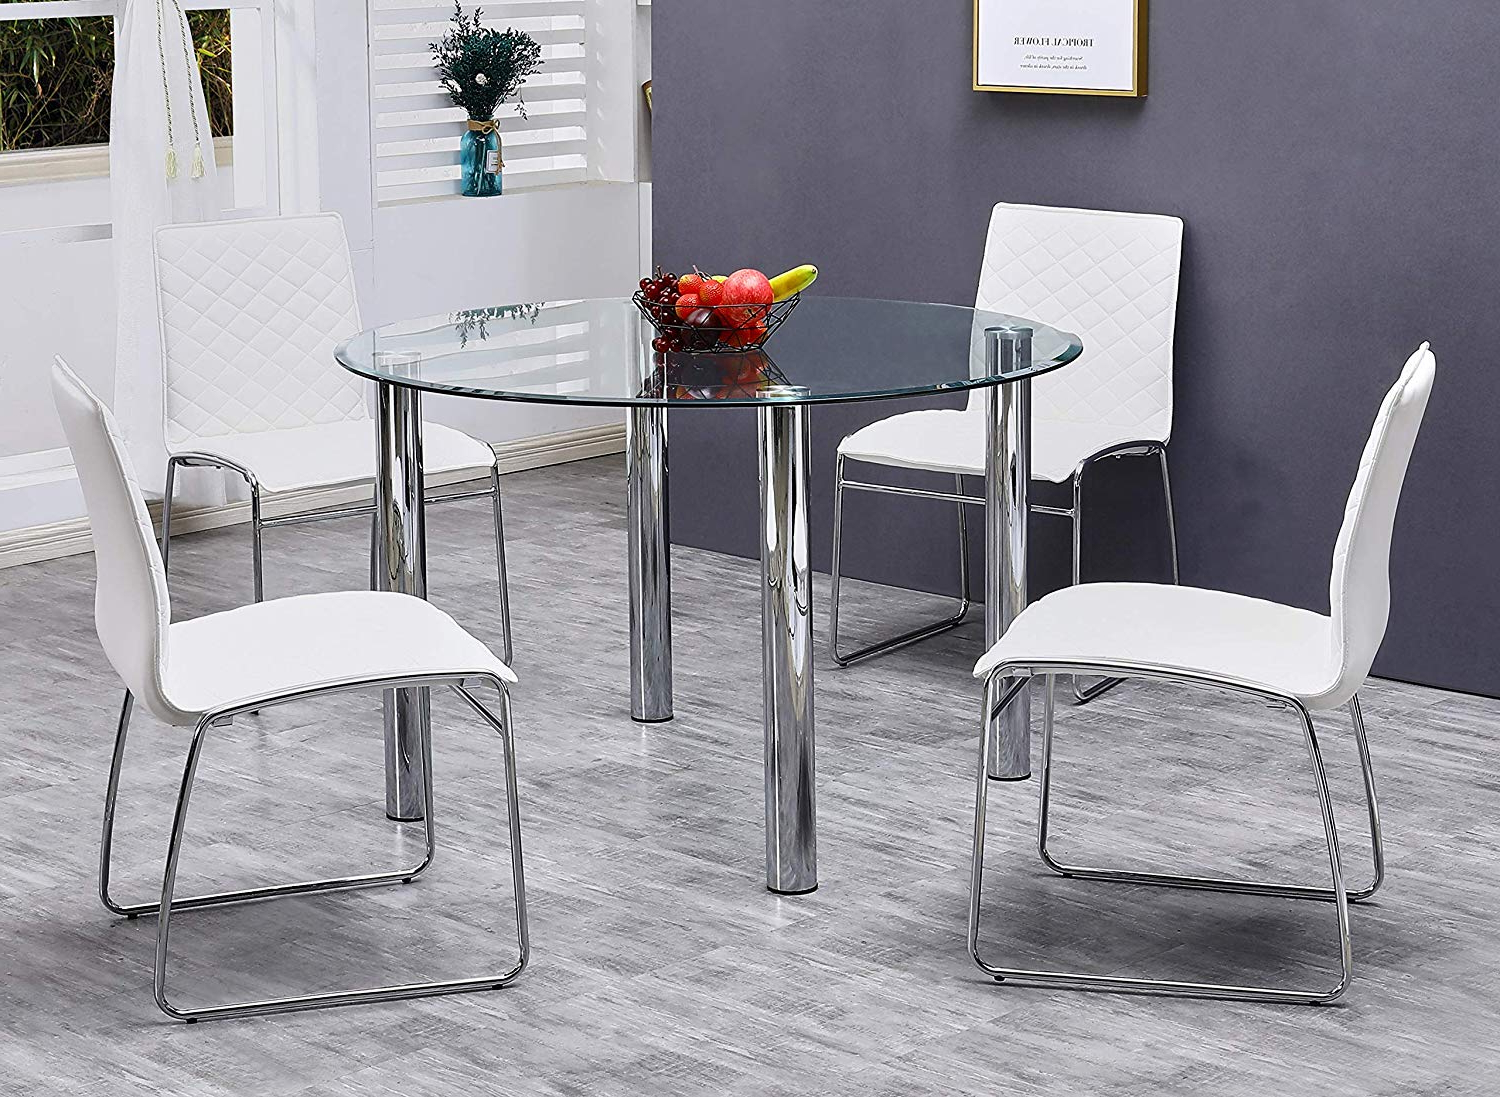 Well Known 4 Seater Round Wooden Dining Tables With Chrome Legs In Amazon – Best Master Furniture Tarina 5 Pcs Round Glass (Gallery 4 of 30)